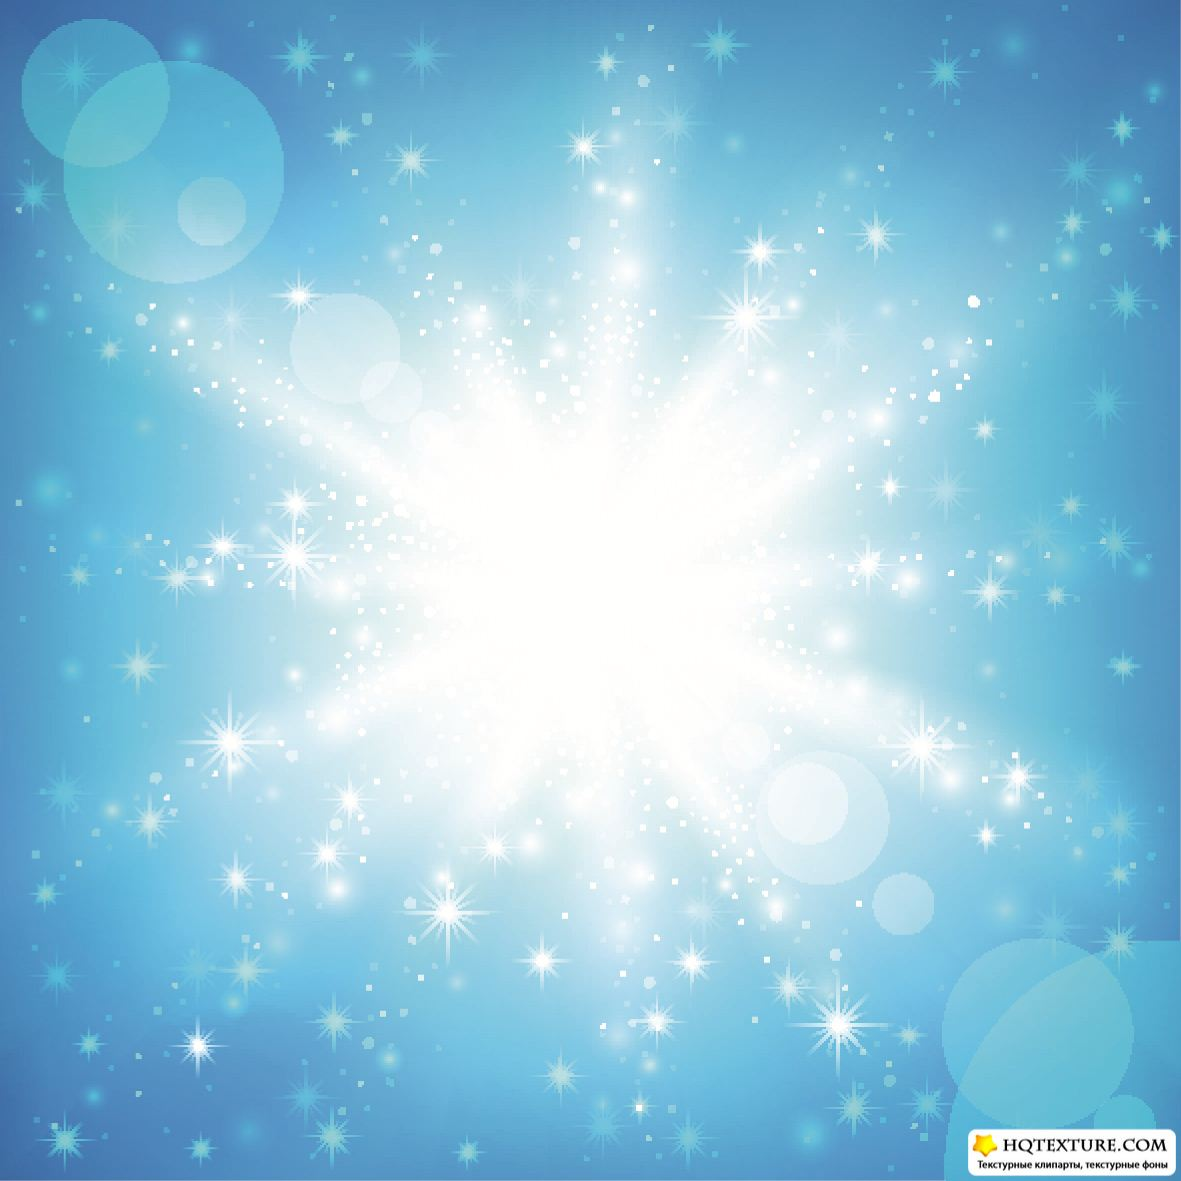 sunlight backgrounds vector 187 Век�о�н�е клипа���